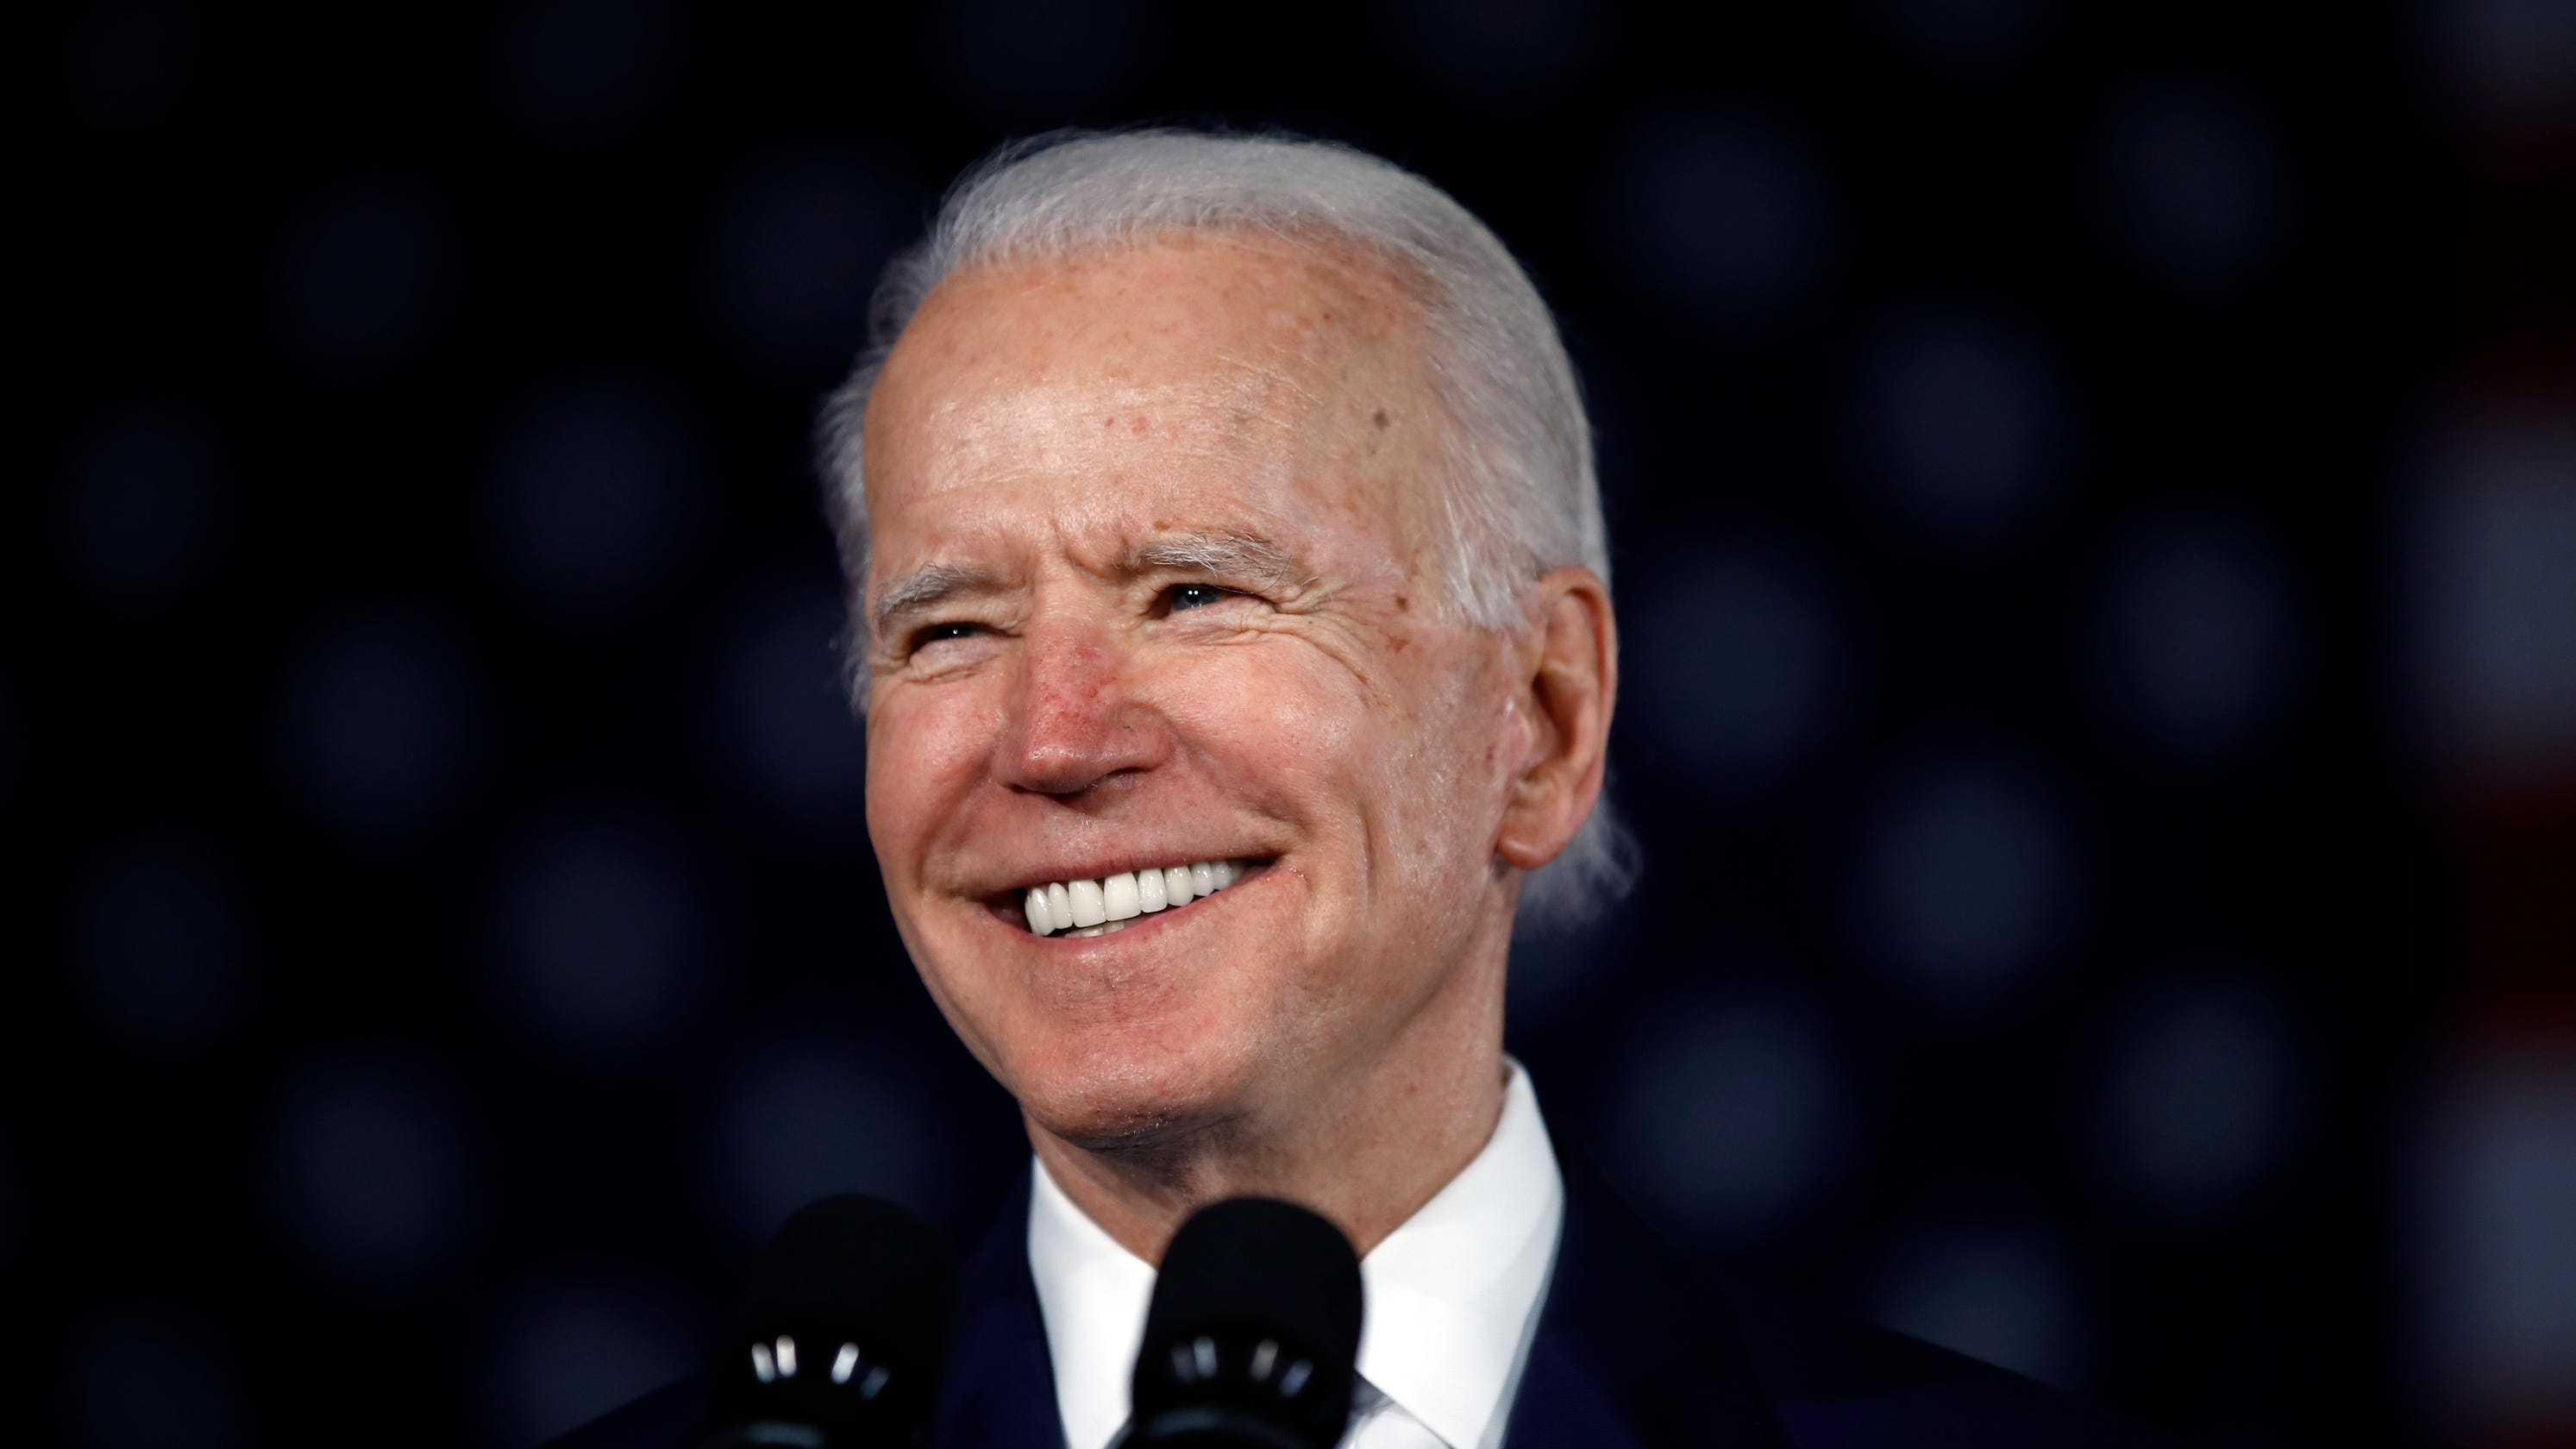 Majority want Biden to win the Democratic nomination over Sanders, new national poll shows thumbnail